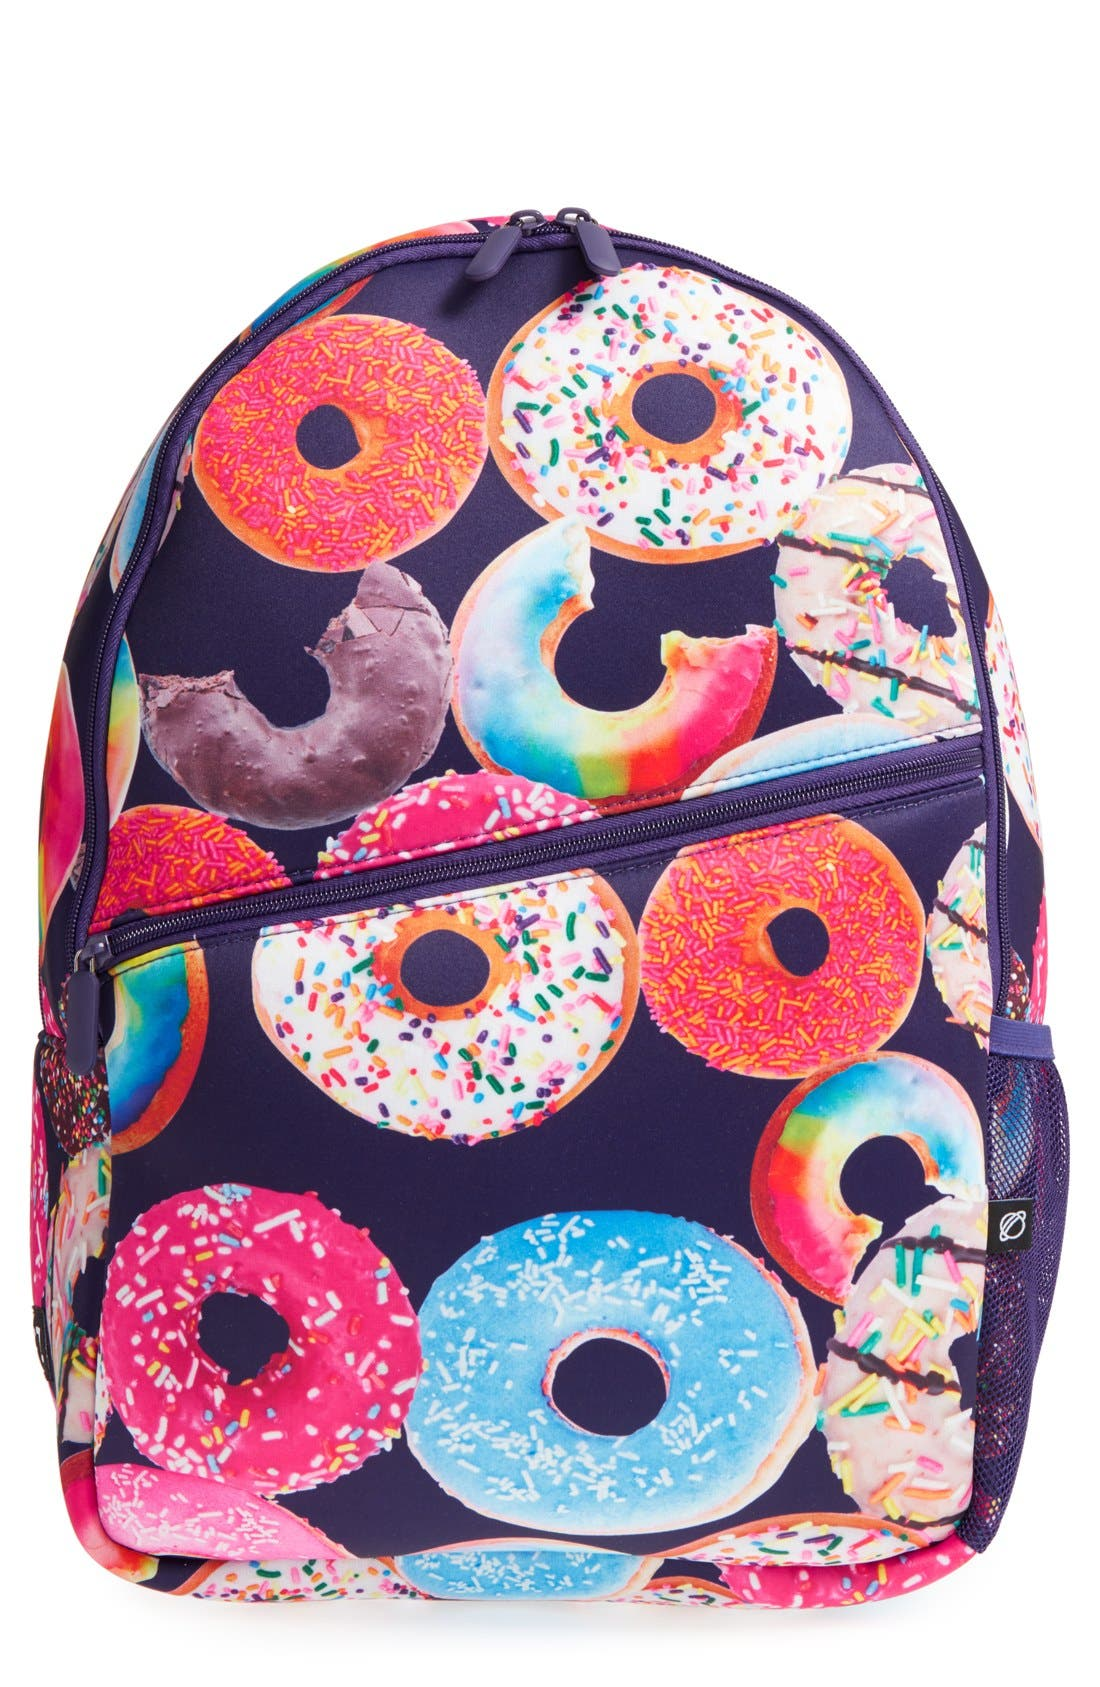 'Donut Shop' Neoprene Backpack,                         Main,                         color, 001